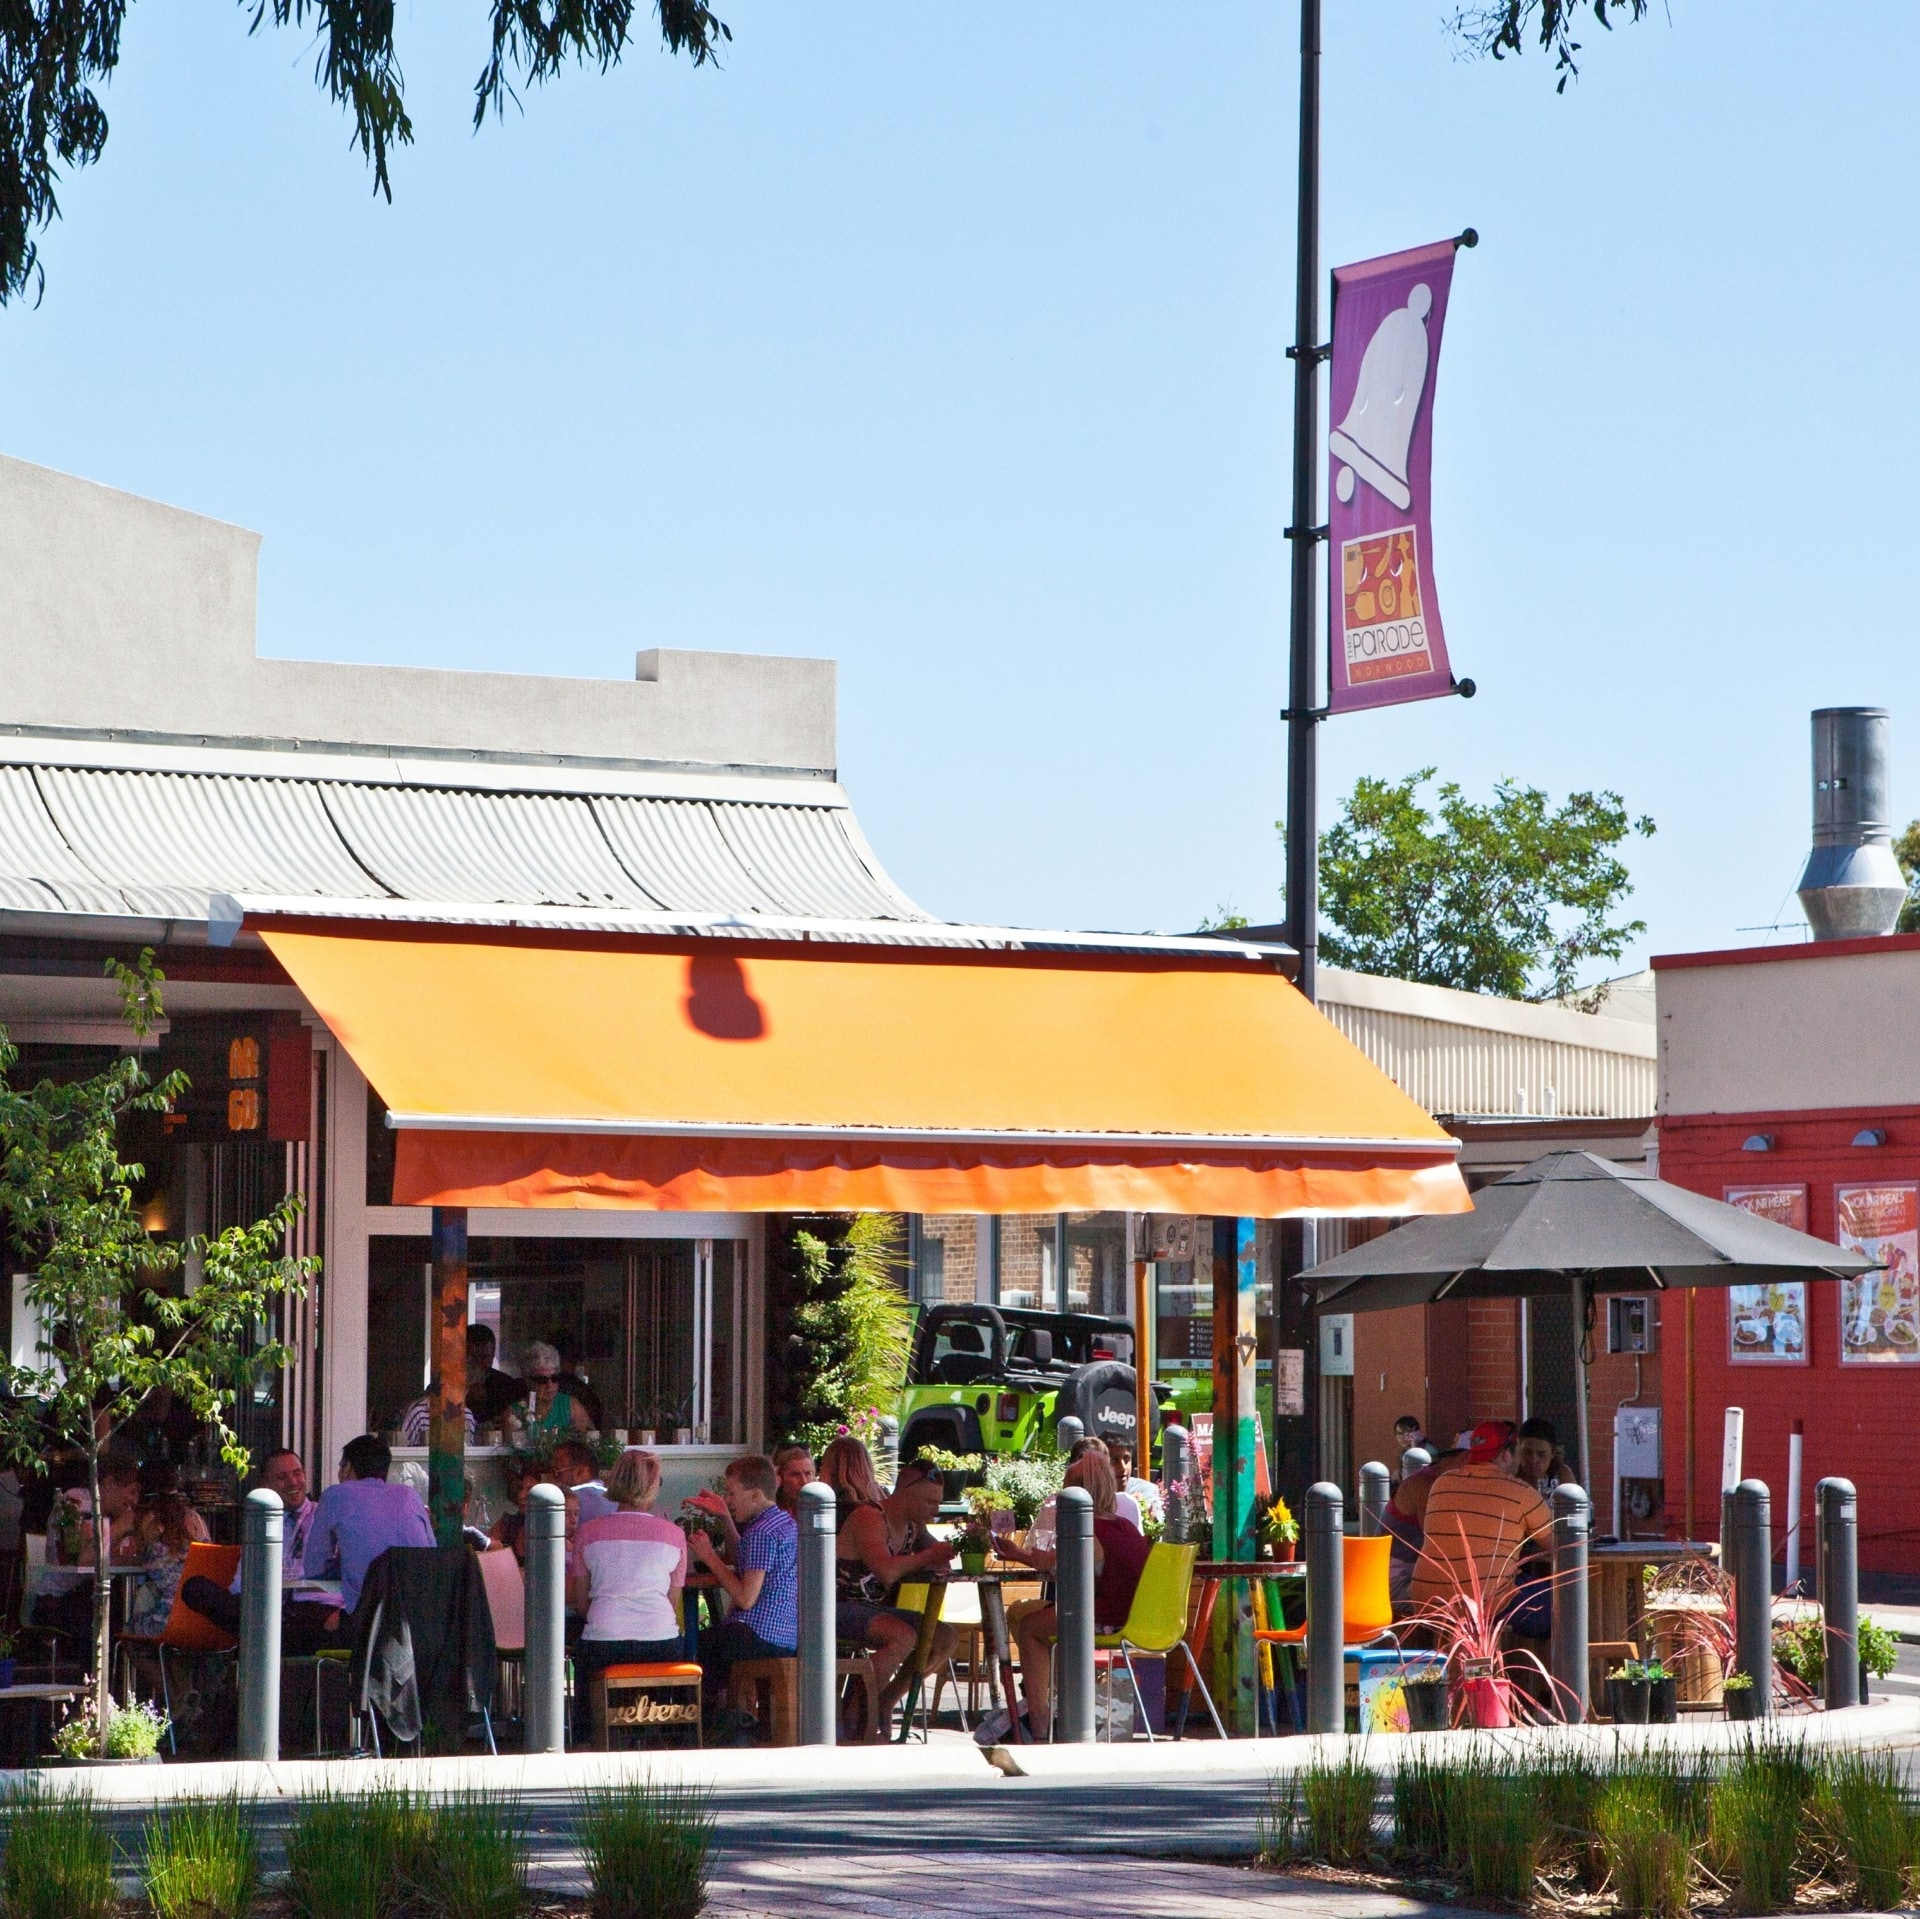 Outdoor seating at Argo on the Parade in Norwood © South Australian Tourism Commission